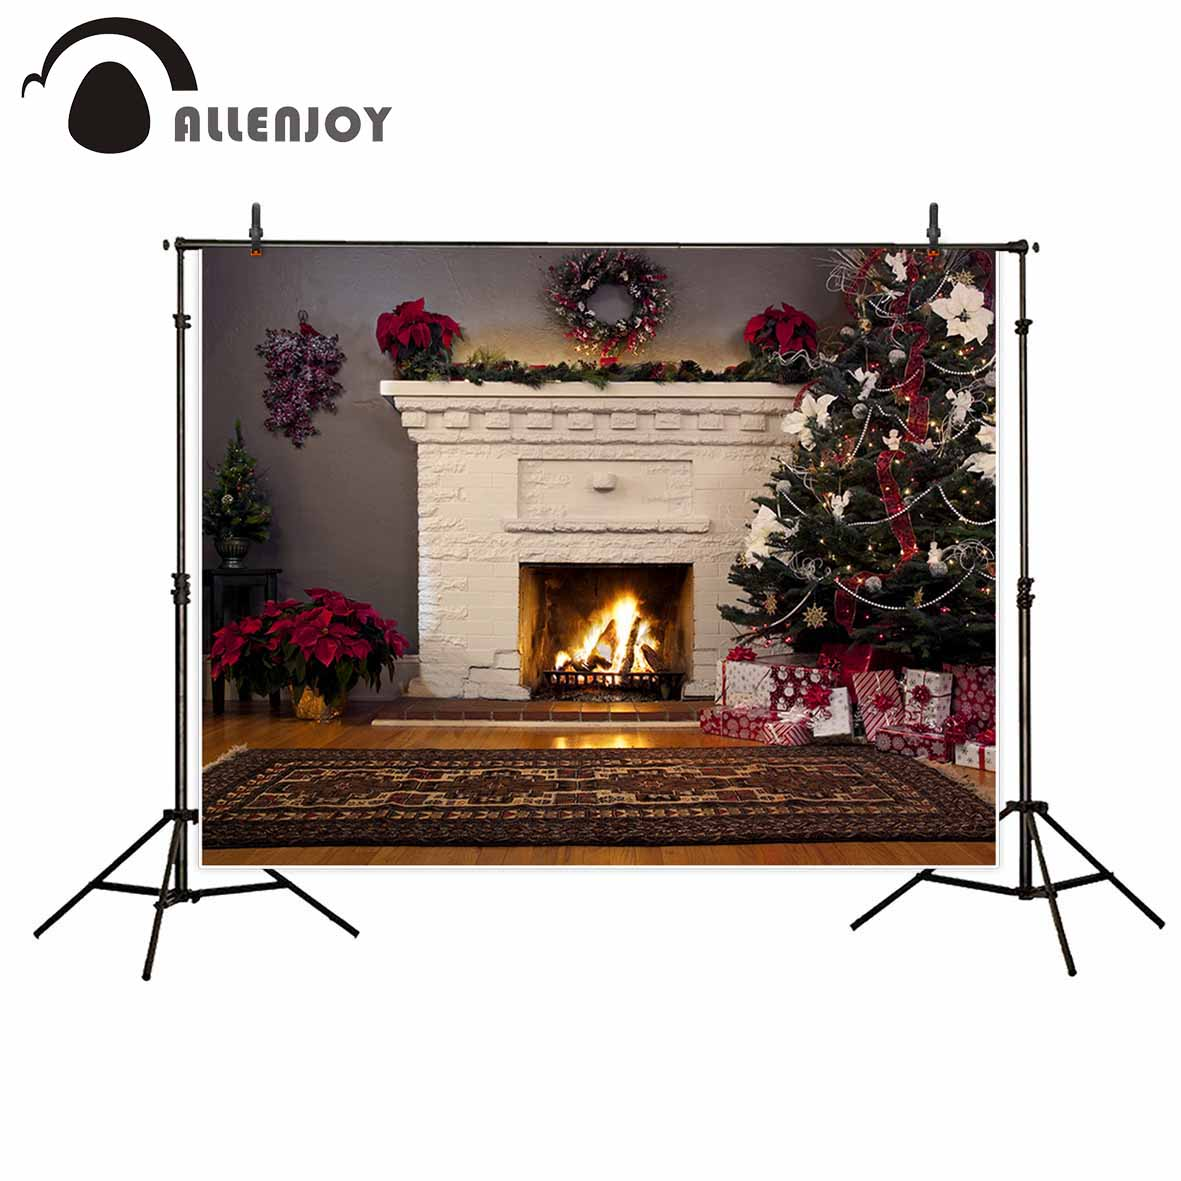 Allenjoy Christmas tree white fireplace wreath carpet gifts flower background for photo photo booth for the photo christmas tree backdrop photography allenjoy wooden carpet fireplace xmas tree background photographic studio vinyl camera